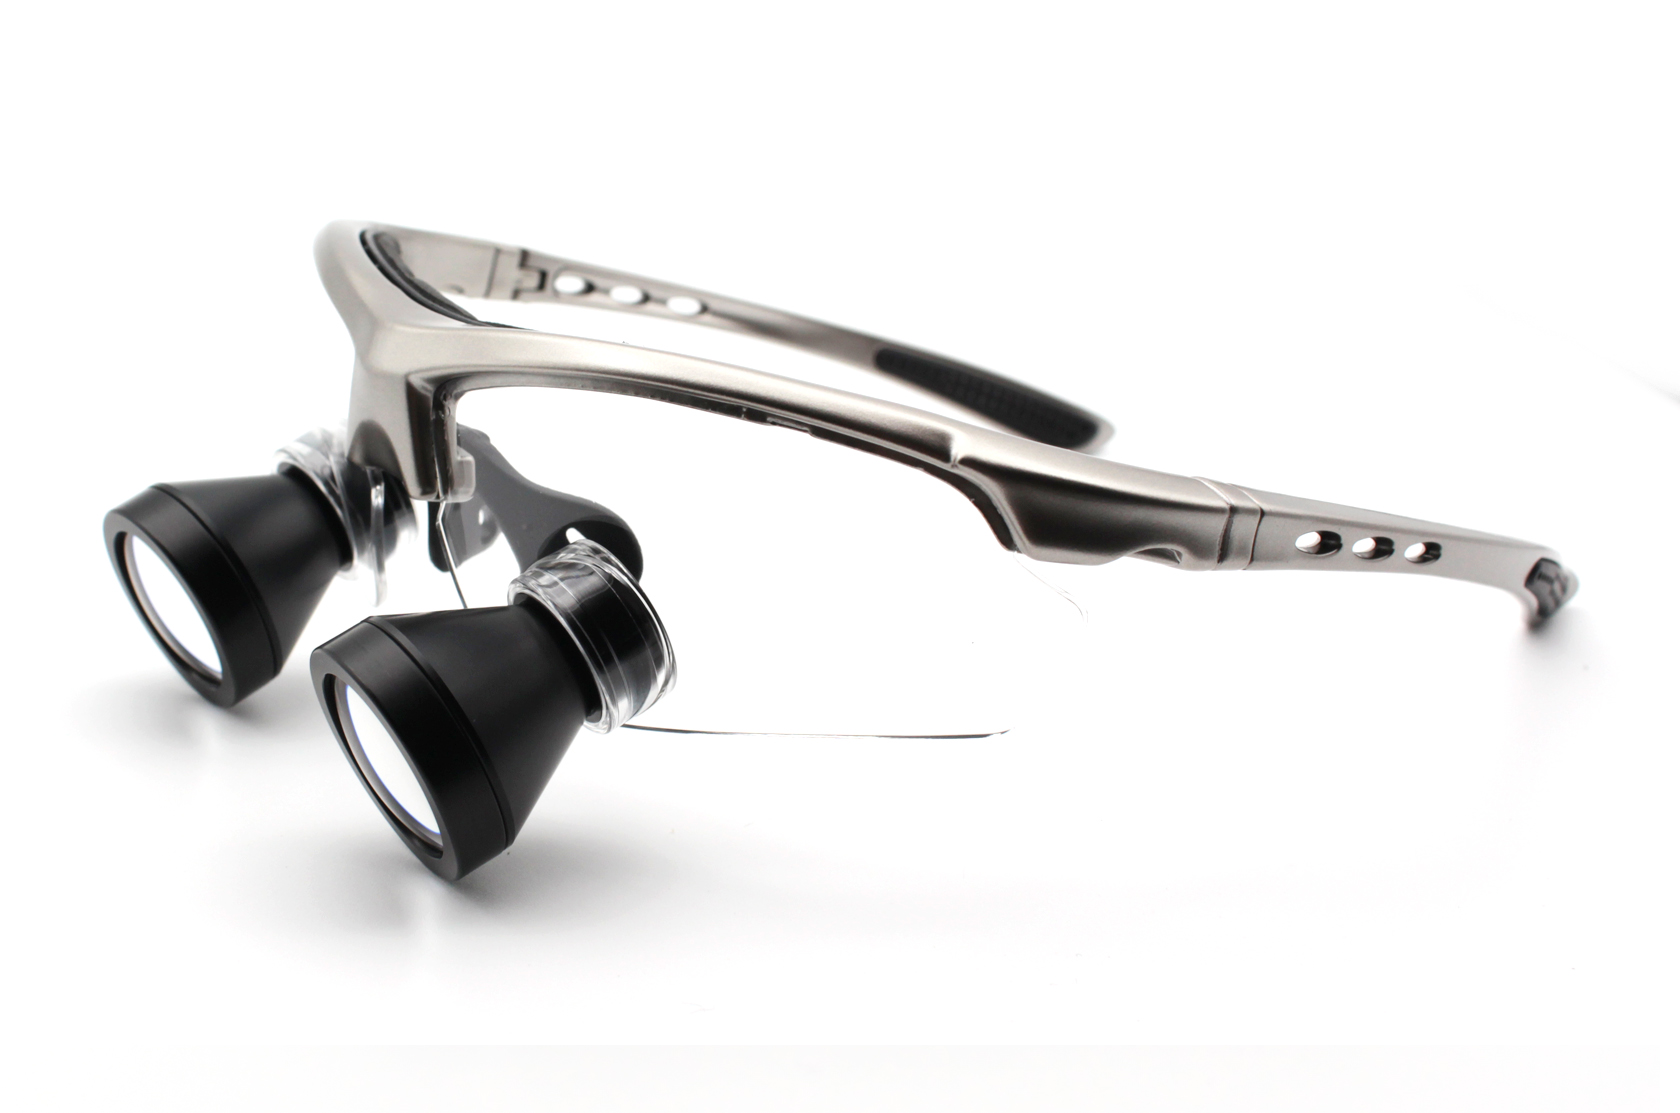 Surgical Loupe